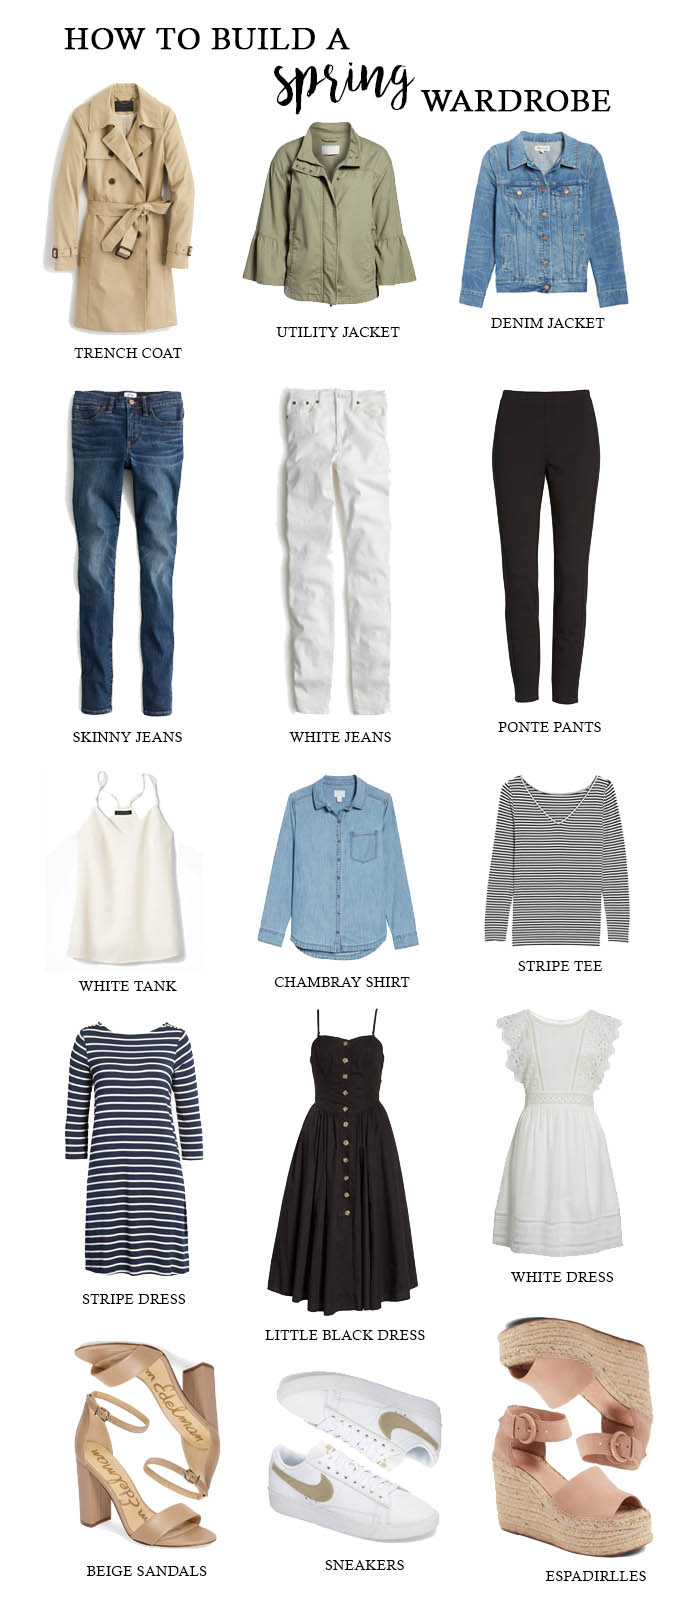 how to build a spring wardrobe